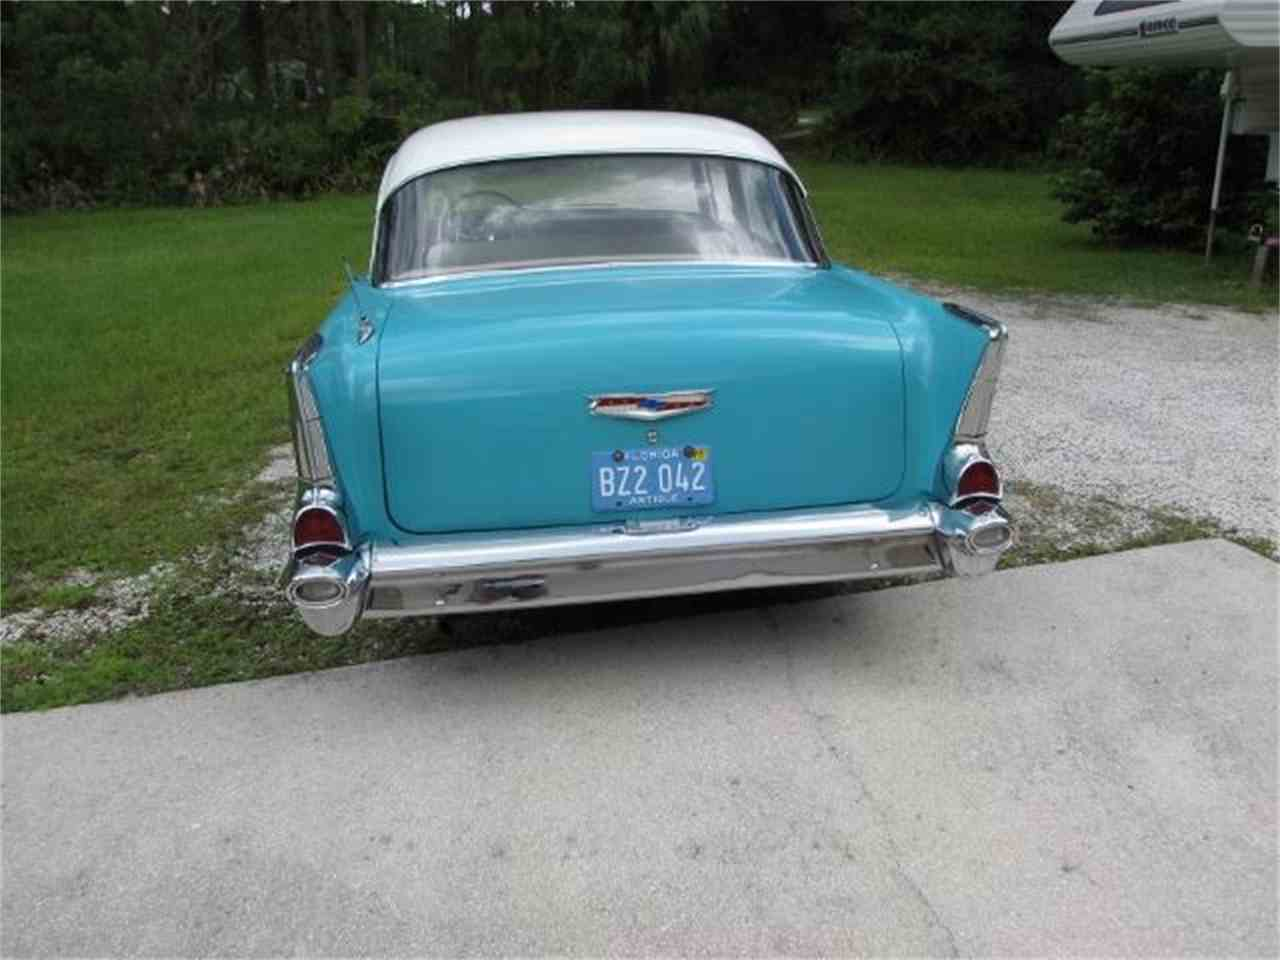 Large Picture of Classic '57 Chevrolet Bel Air located in Florida Offered by a Private Seller - JOG1